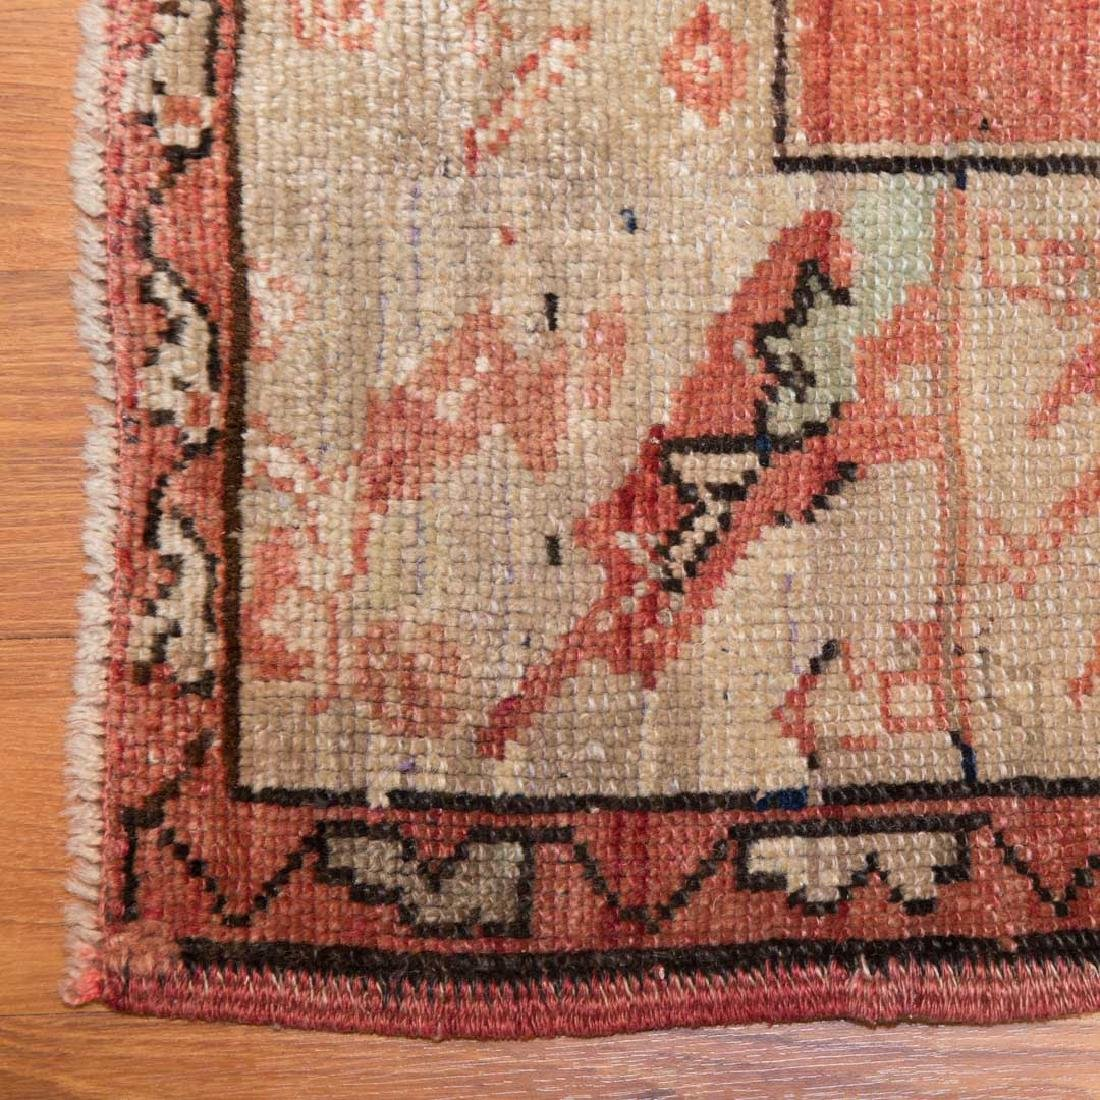 Antique Oushak rug, approx. 4.6 x 6.8 - 2